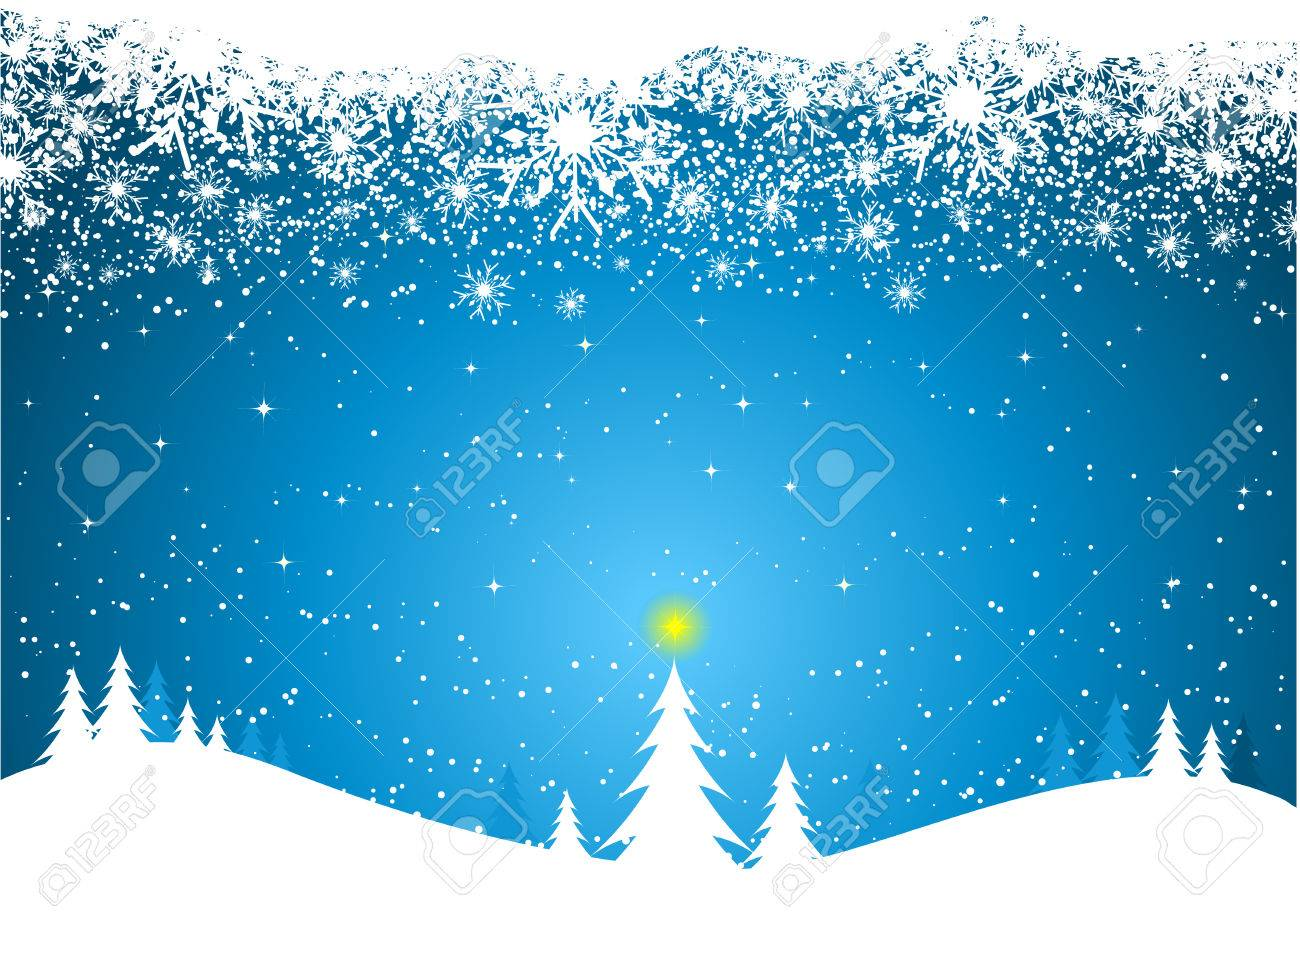 Snowy Border Royalty Free Stock Images - Image: 301109